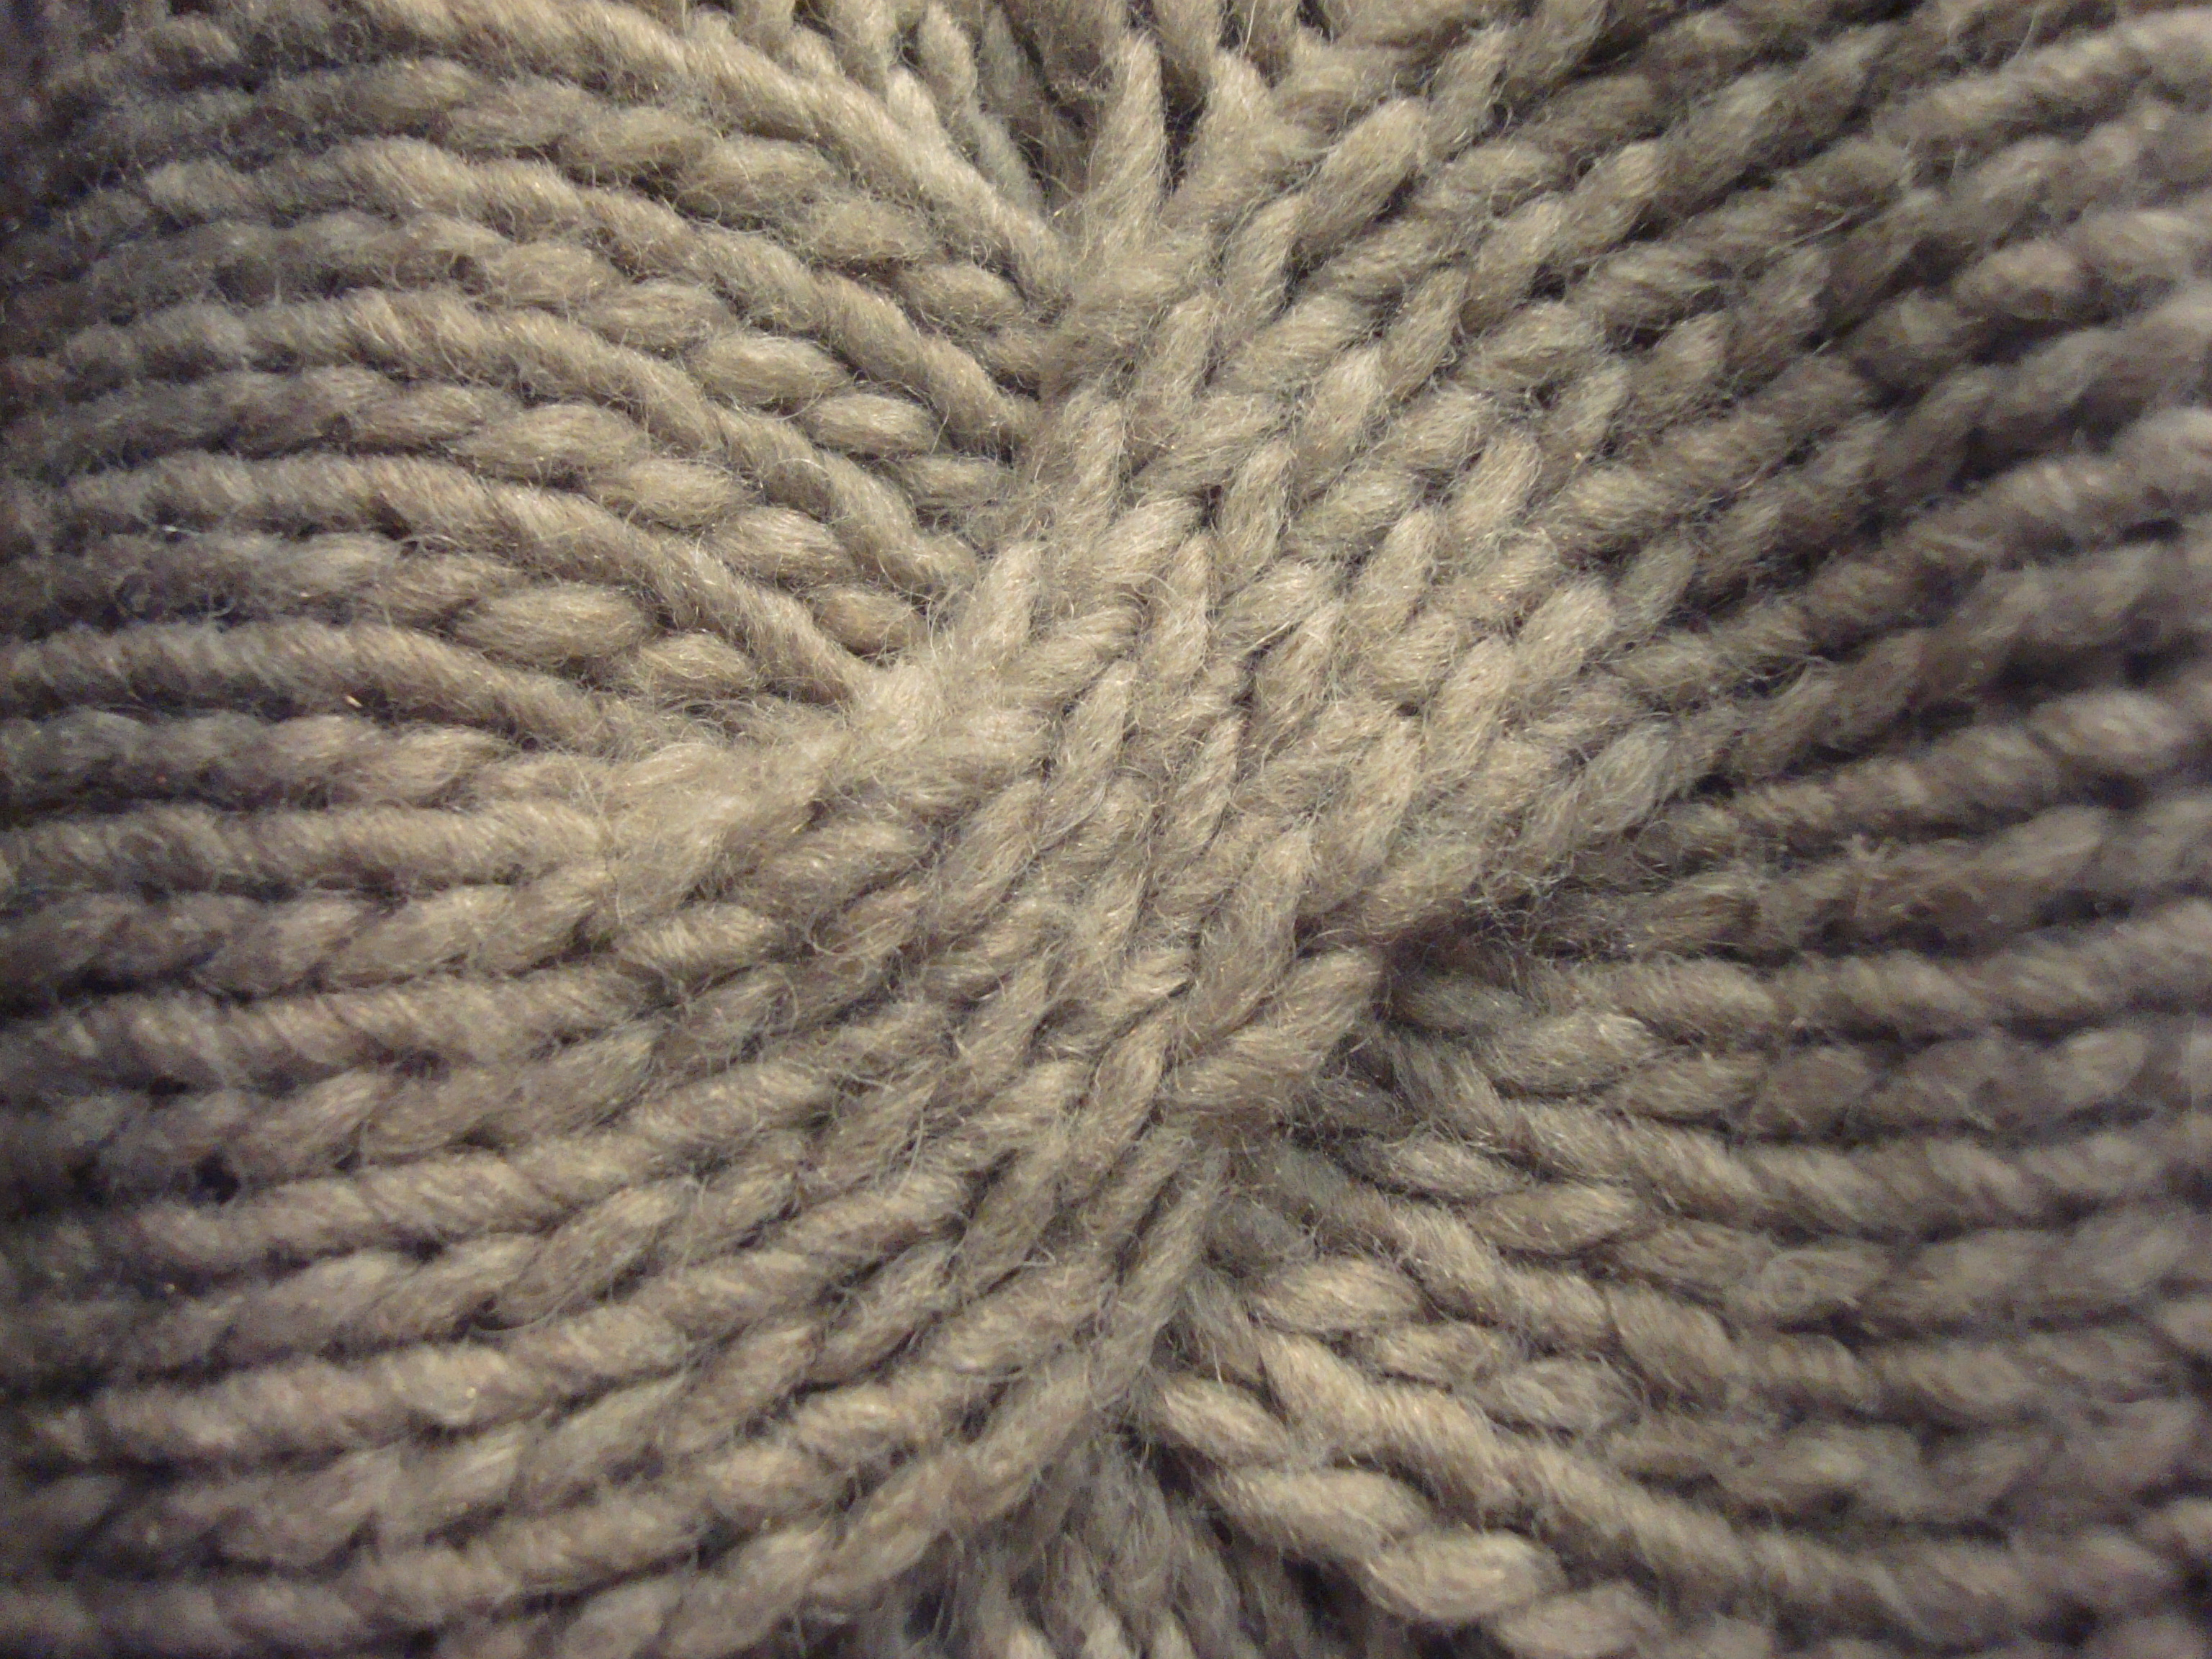 Knitted fabric texture, Brown, Clothes, Clothing, Fabric, HQ Photo